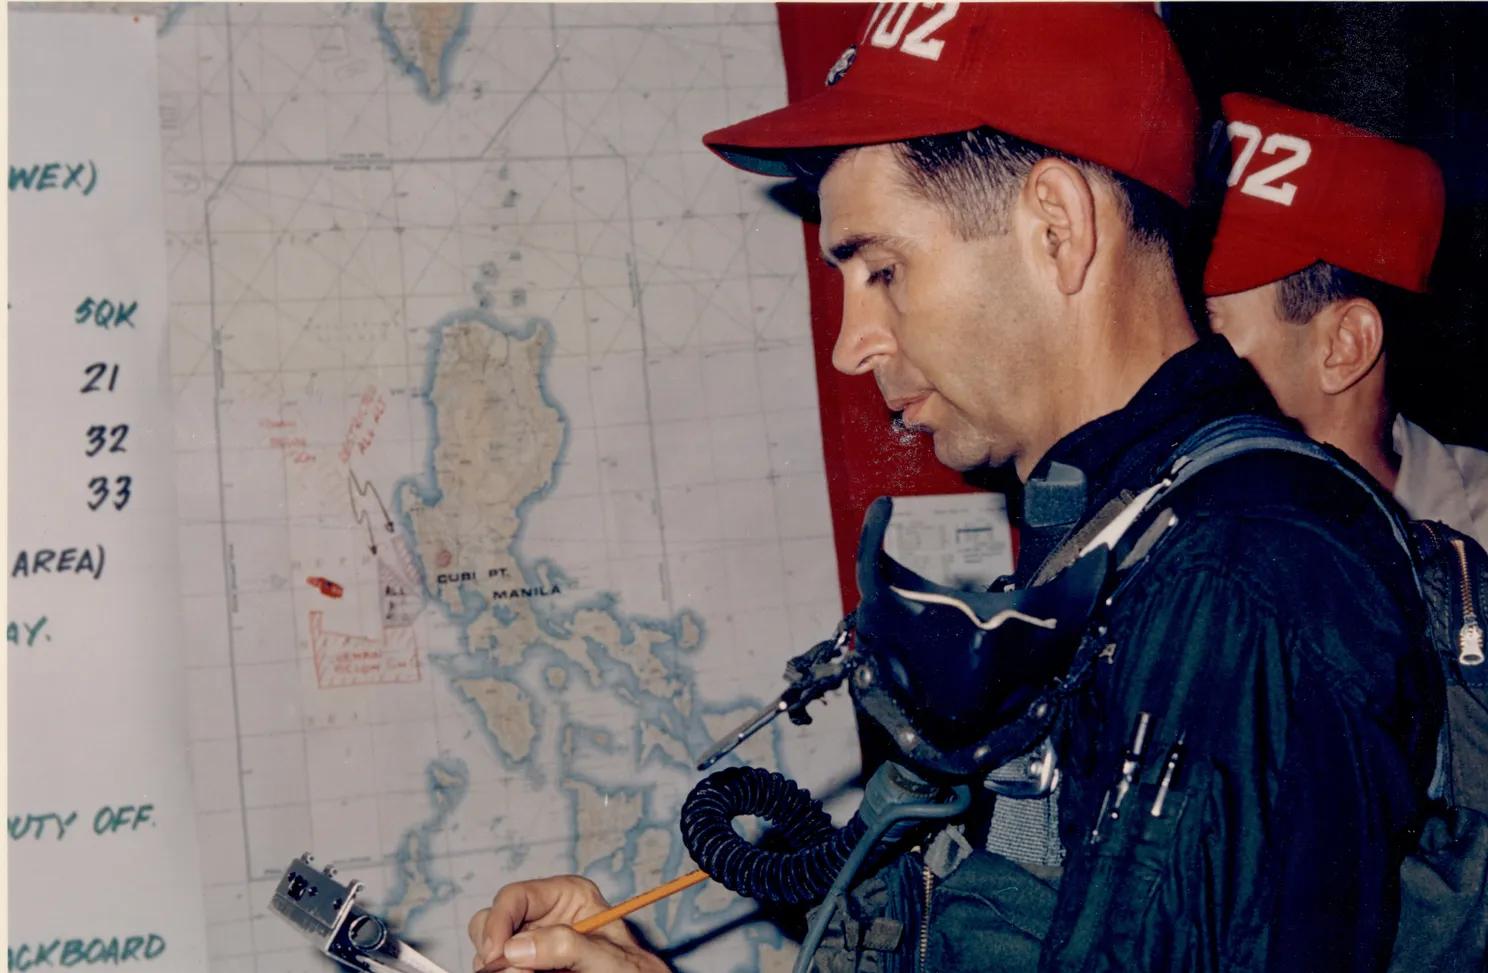 Gene Wilber aboard the USS America preparing for a flight in May 1968, one month before his plane was shot down. FAMILY PHOTO